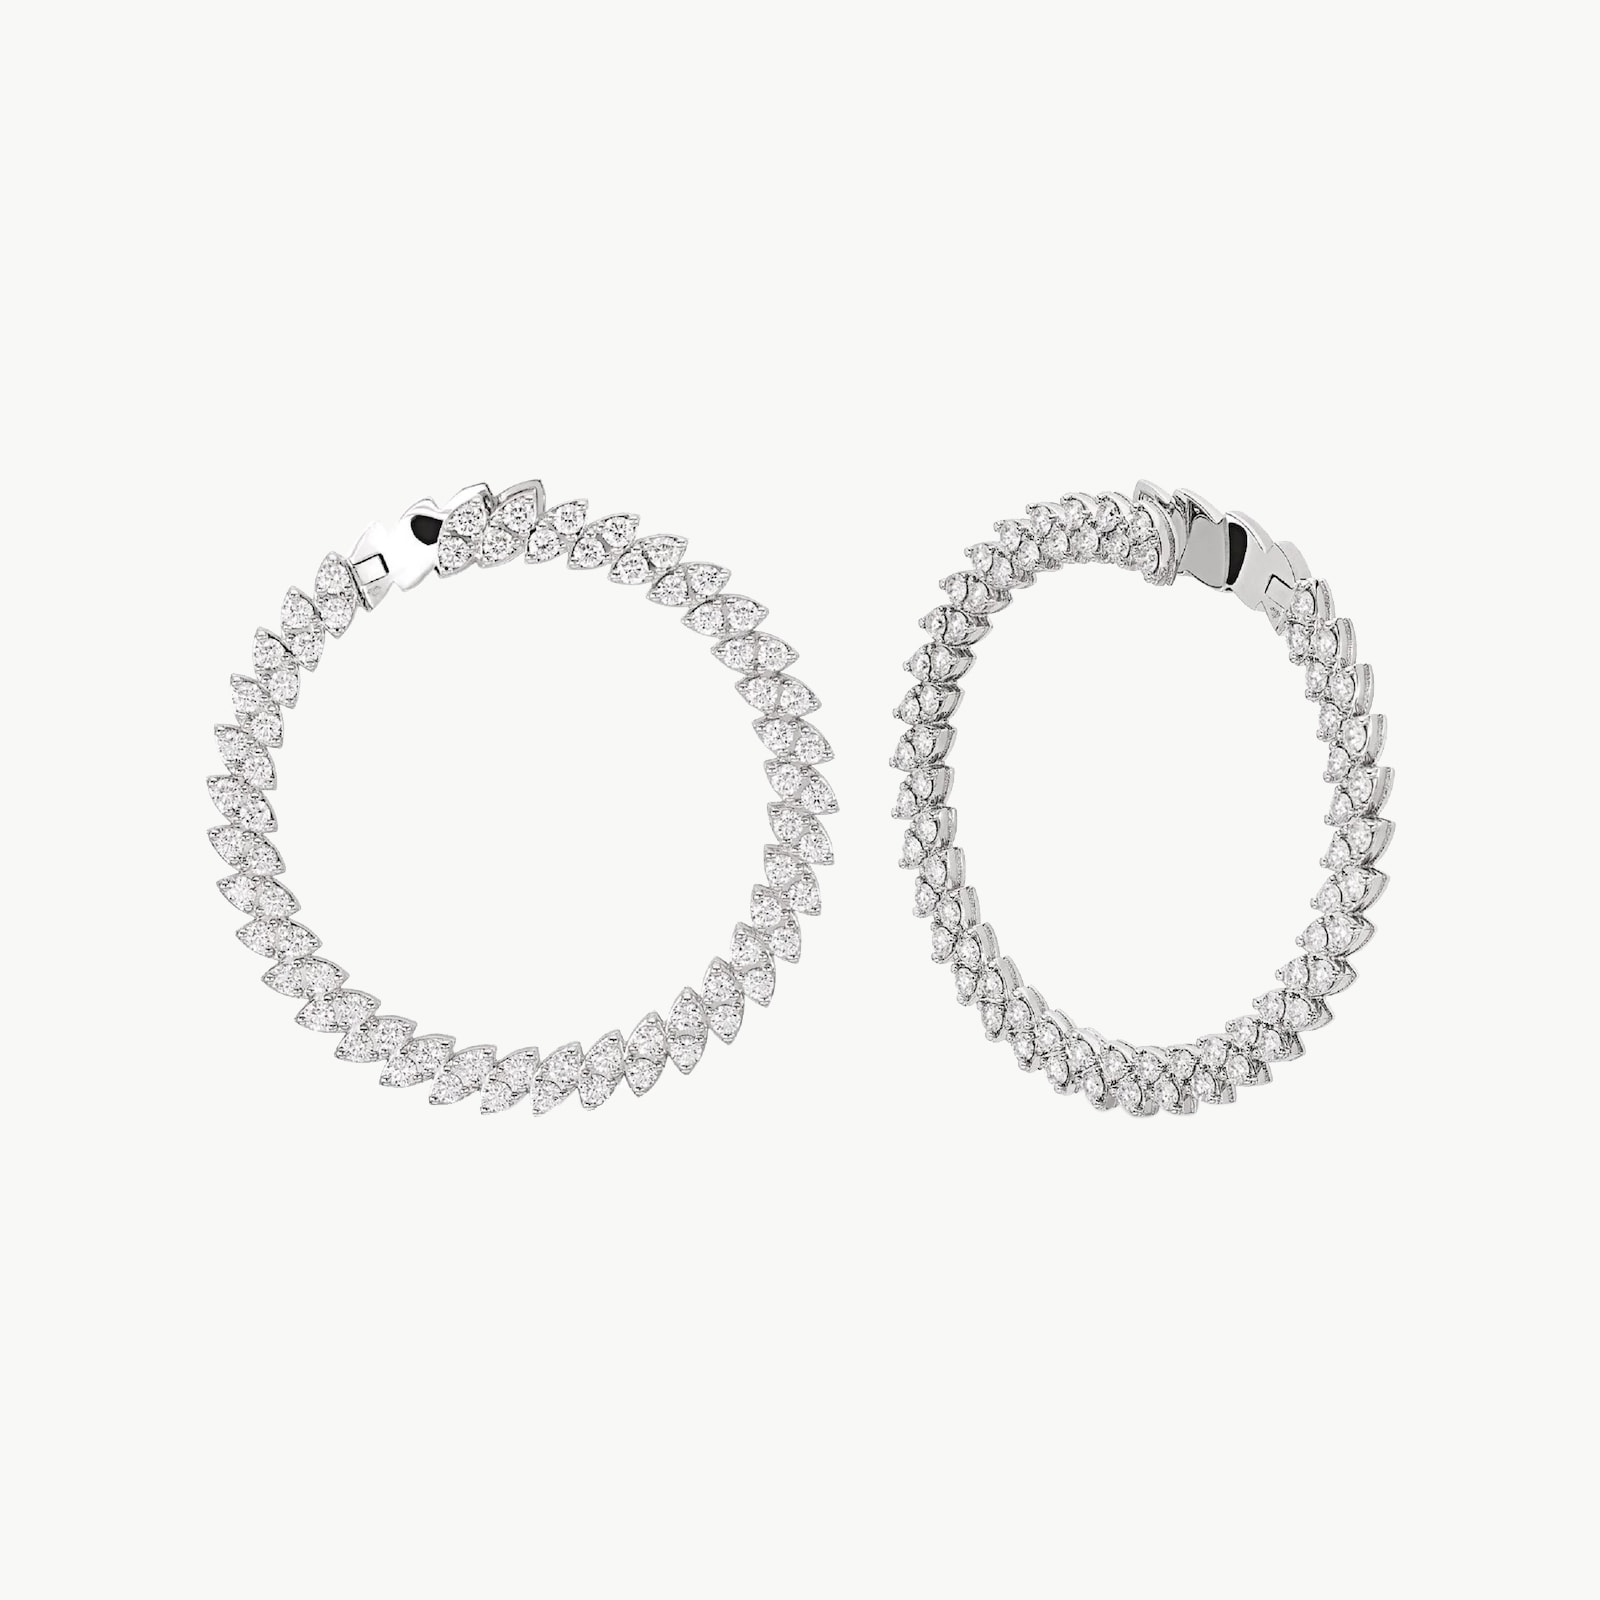 The Marquesa Collection 18k White Gold 4.24cttw Diamond Earrings